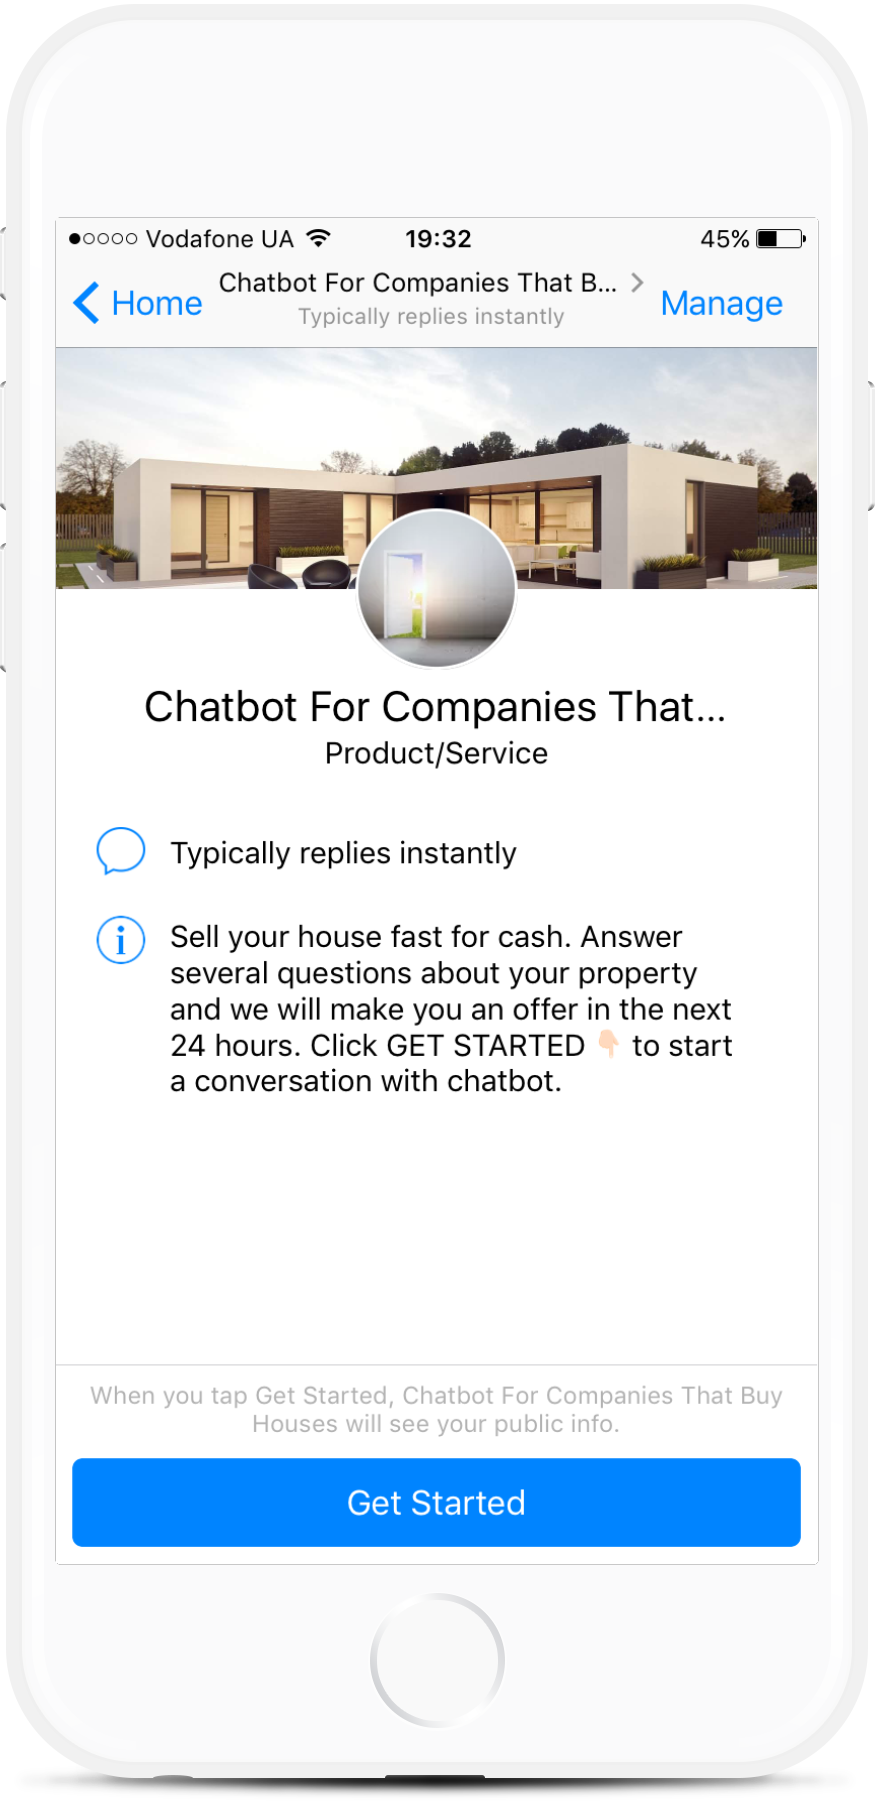 Lead Generation Chatbot For Companies That Buy Houses